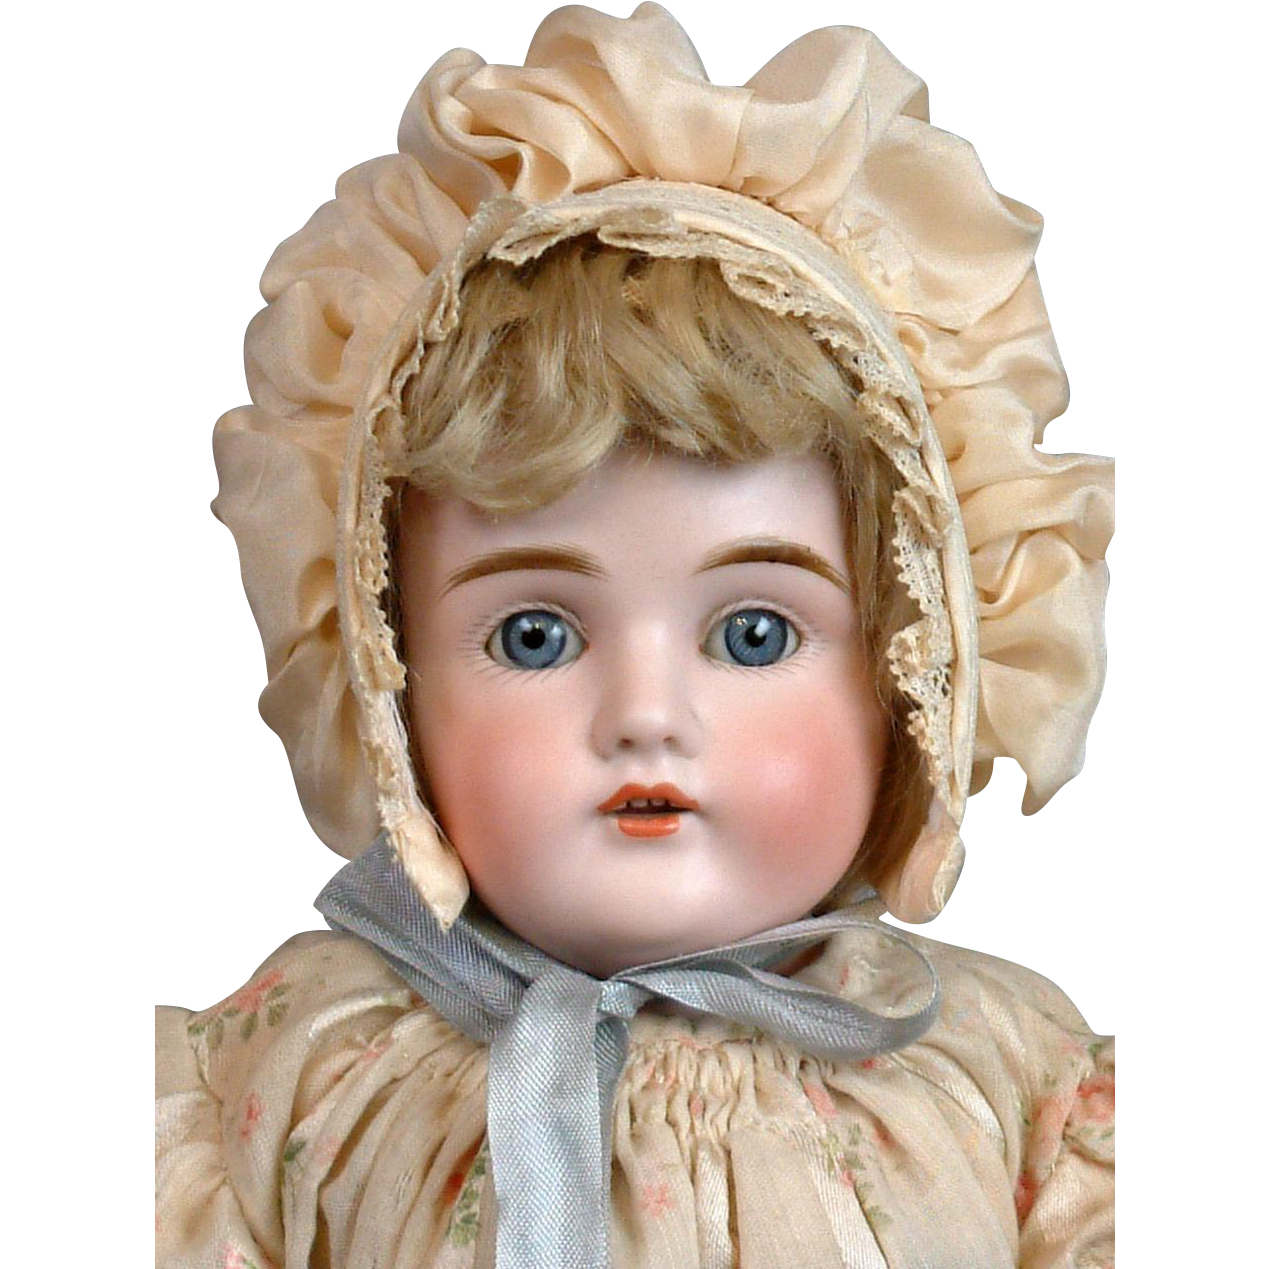 "Gorgeous All-Original Kestner 154 16.5"" Doll on Original Stamped Body"